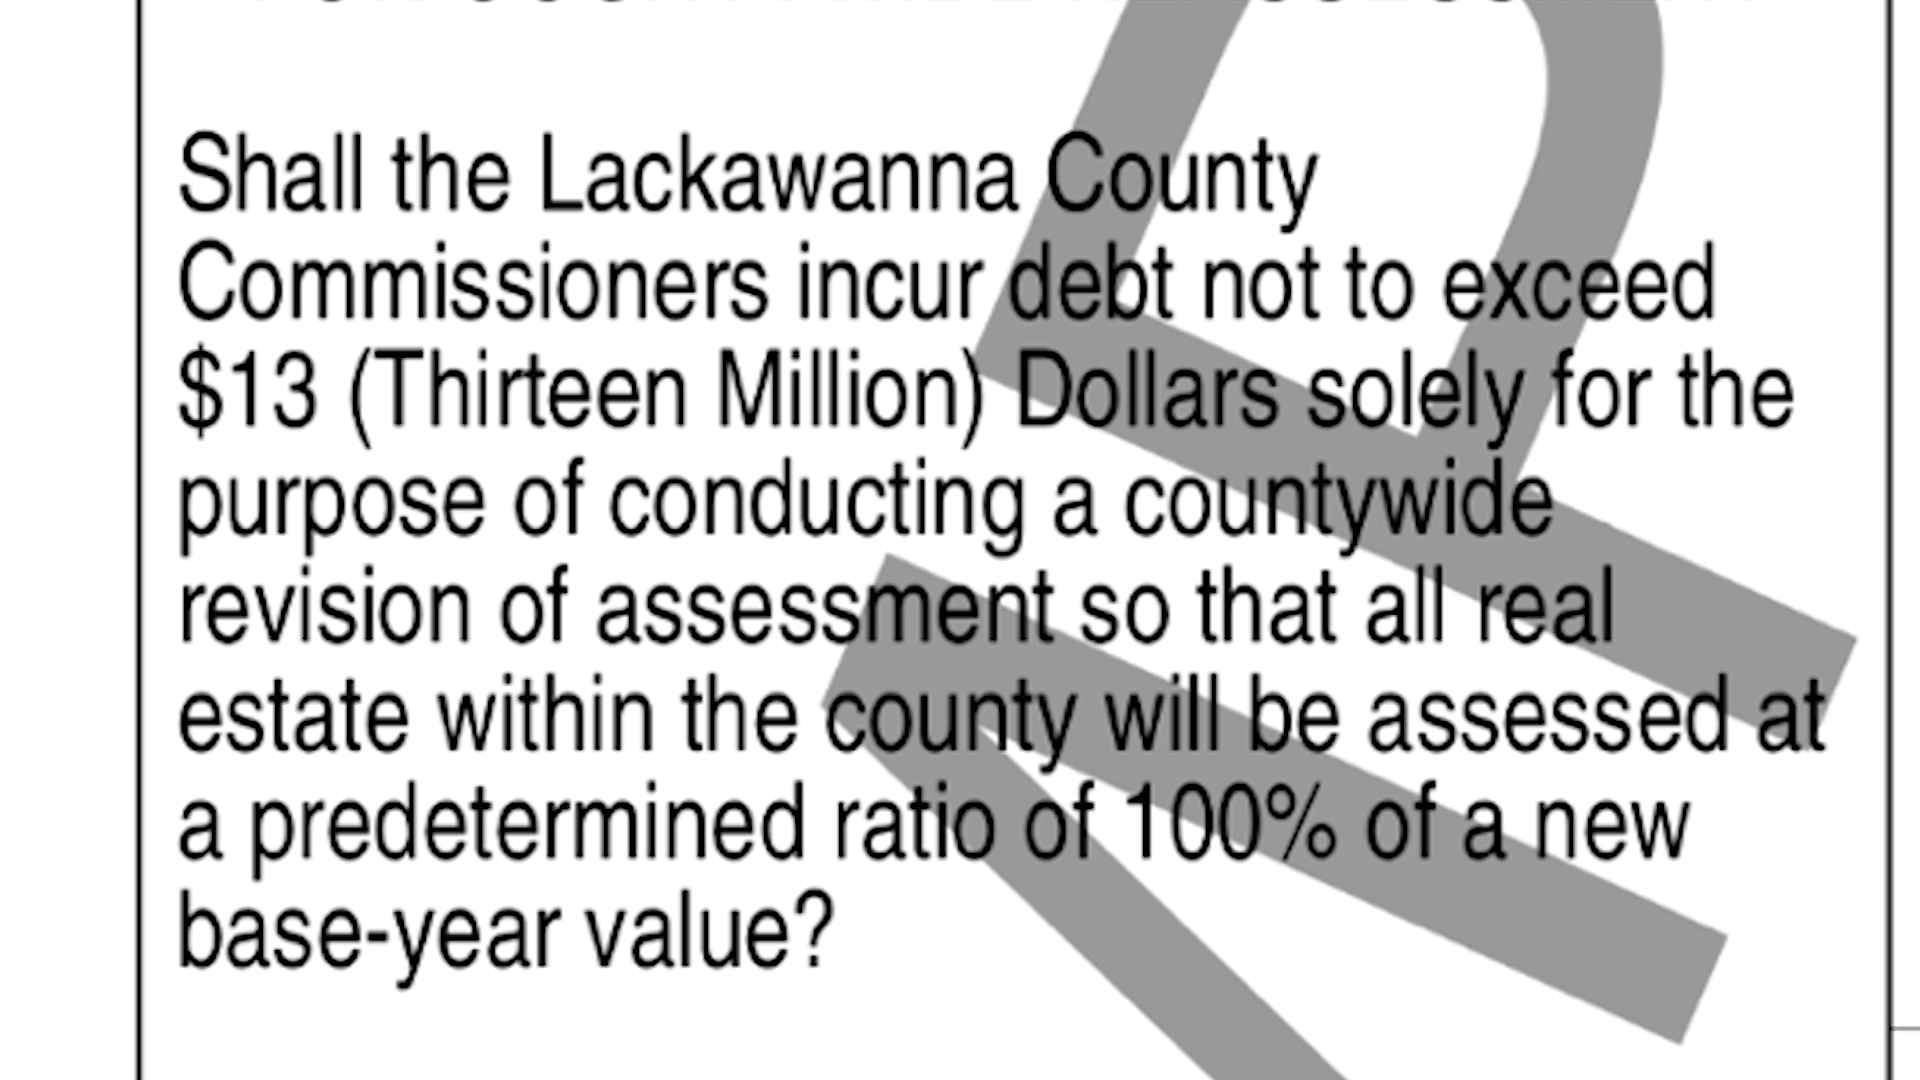 LackawannaCountyReassessment.jpg